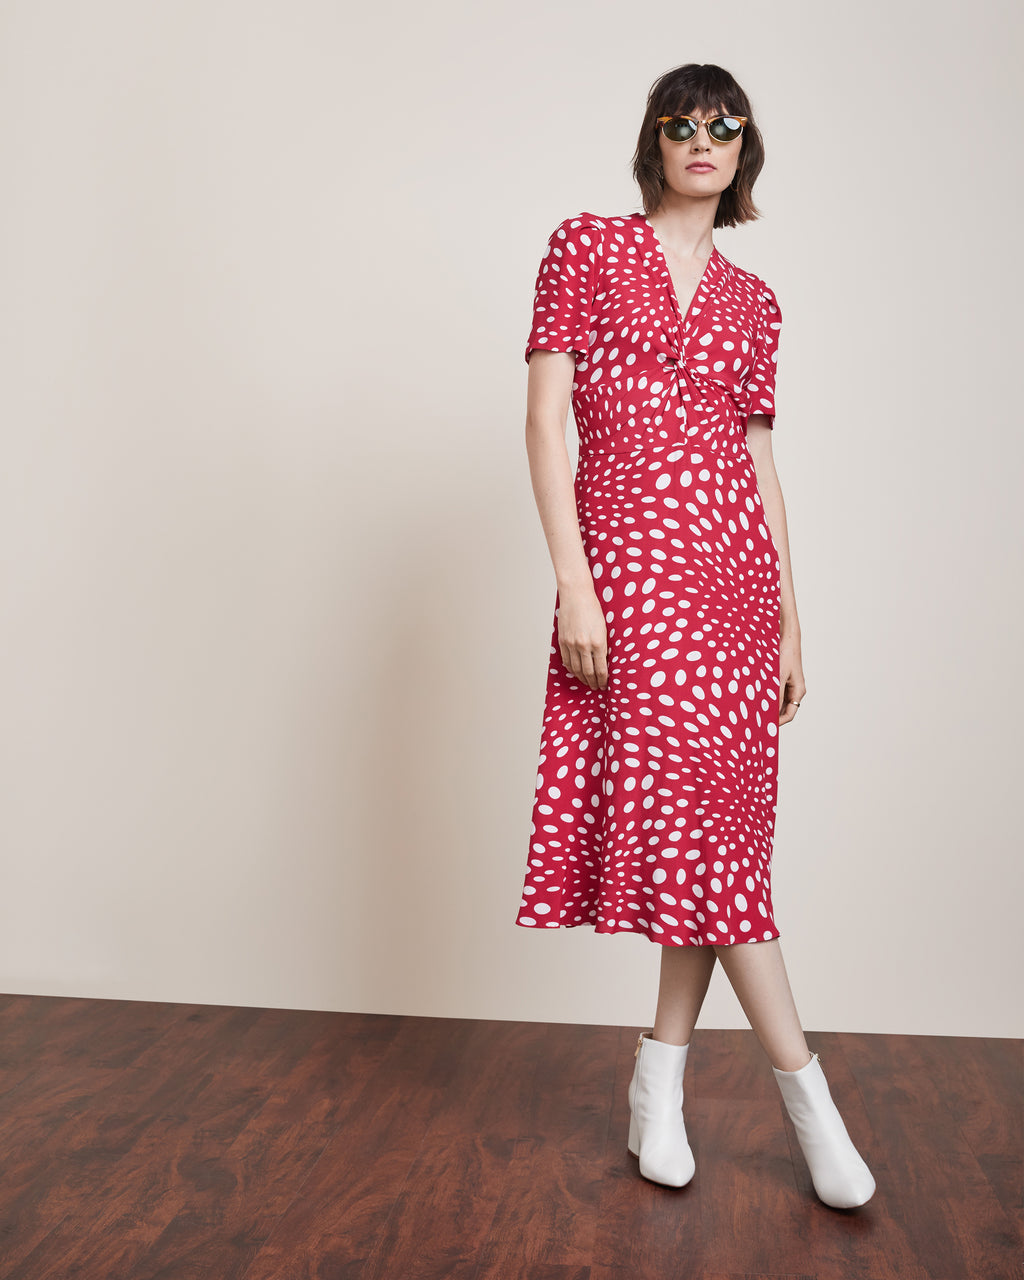 AQ10063 - Twist Front Dress - dresses - midi - A classic silhouette, this twist front dress is a midi length with short sleeves. Make this your go to summer staple.